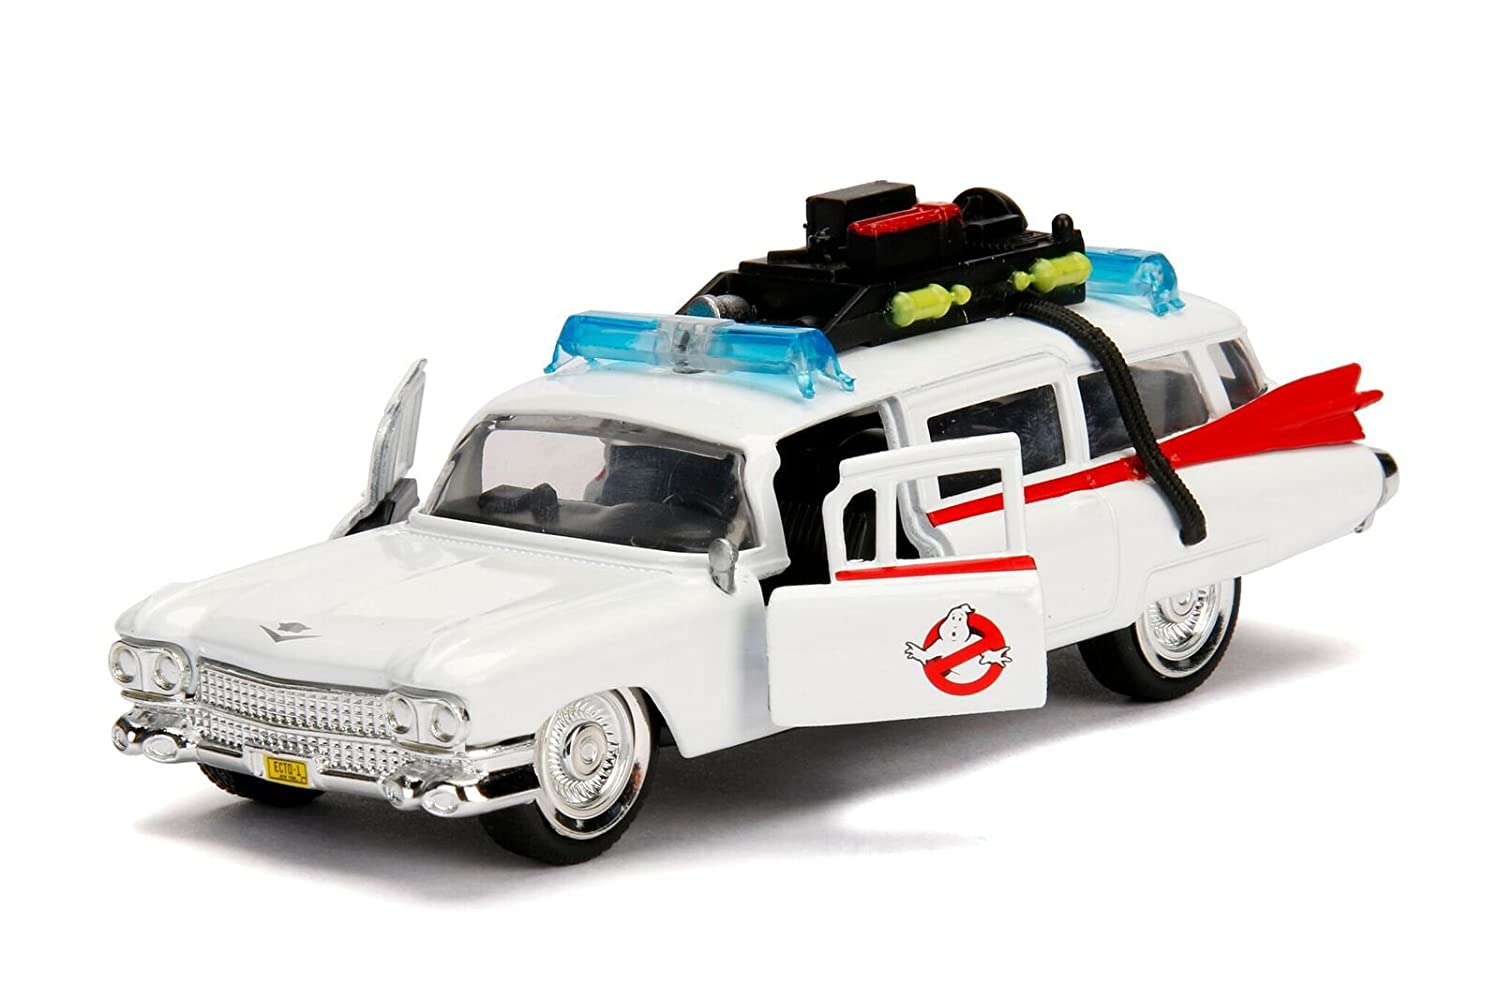 Jada Toys Hollywood Rides: Ghostbusters Ecto-1 Die-Cast Collectible Toy Model Car/Vehicle, 1:32 Scale JA99541